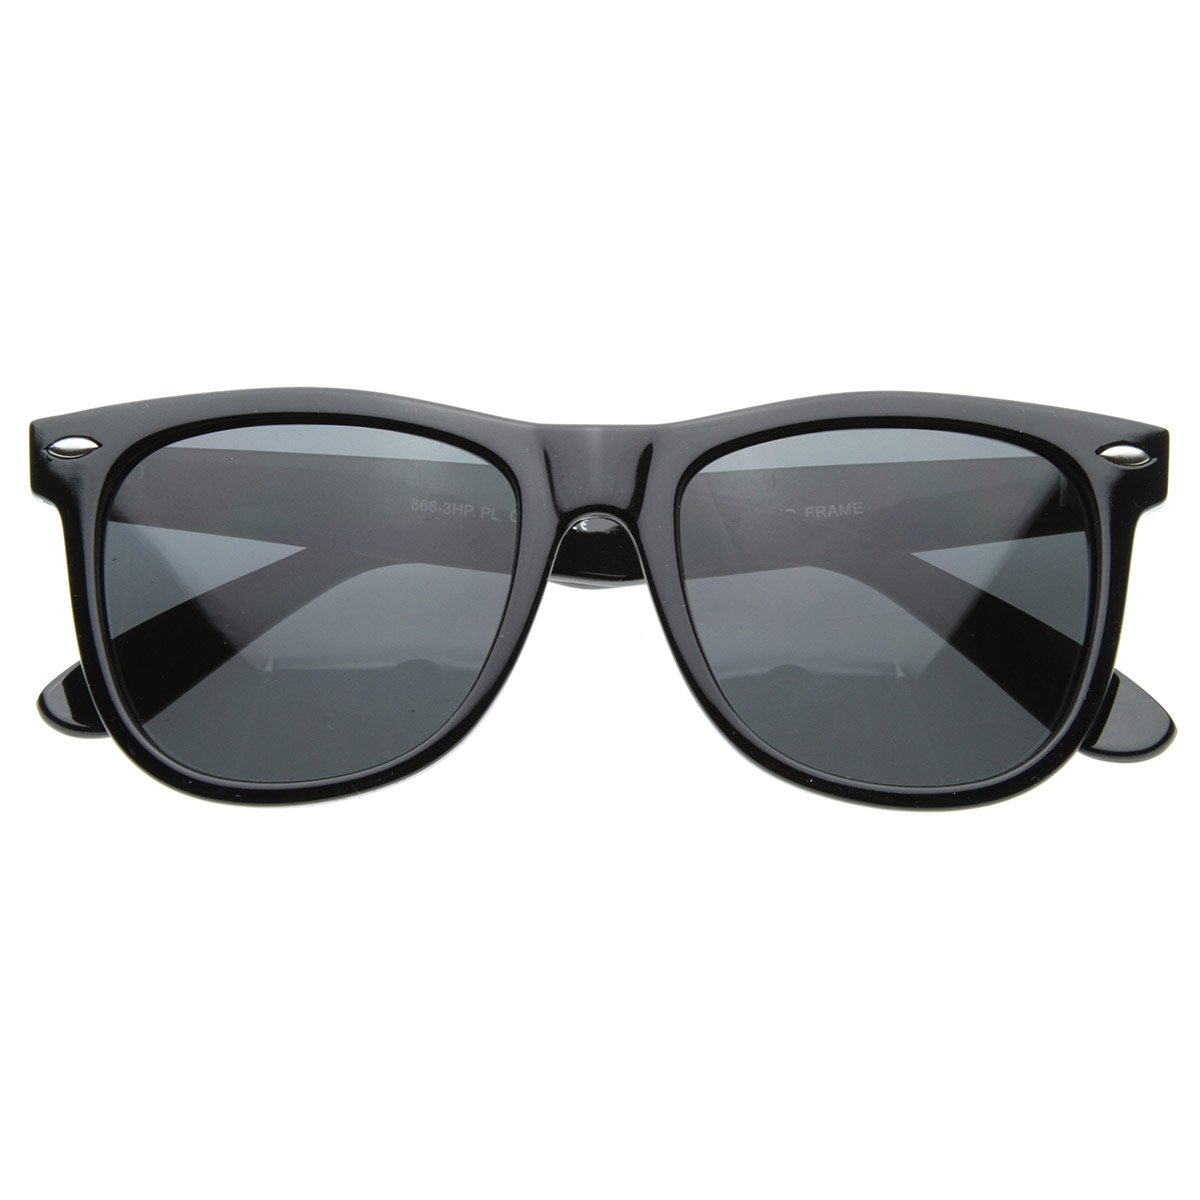 Large 55mm Polarized Lens Anti Glare Classic Horn Rimmed Style Sunglasses (Black)